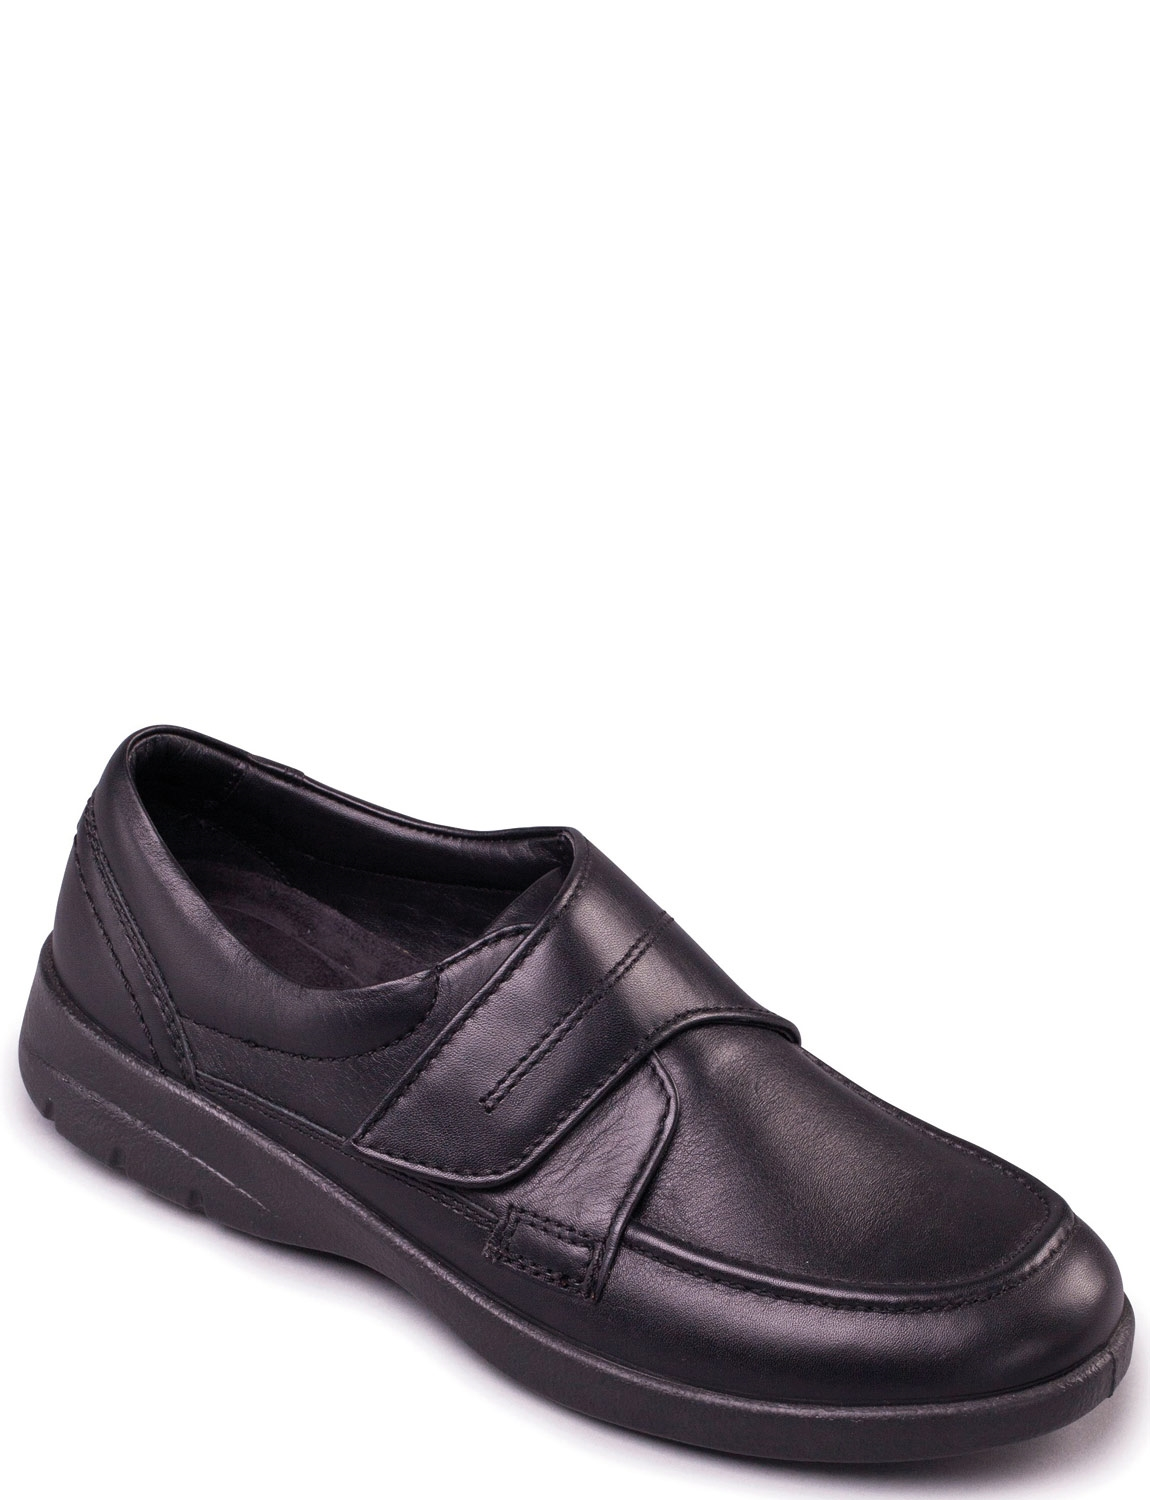 70c230dfb3ebf Padders Solar Extra Wide Leather Dual Fit Touch Fasten Shoe | Chums